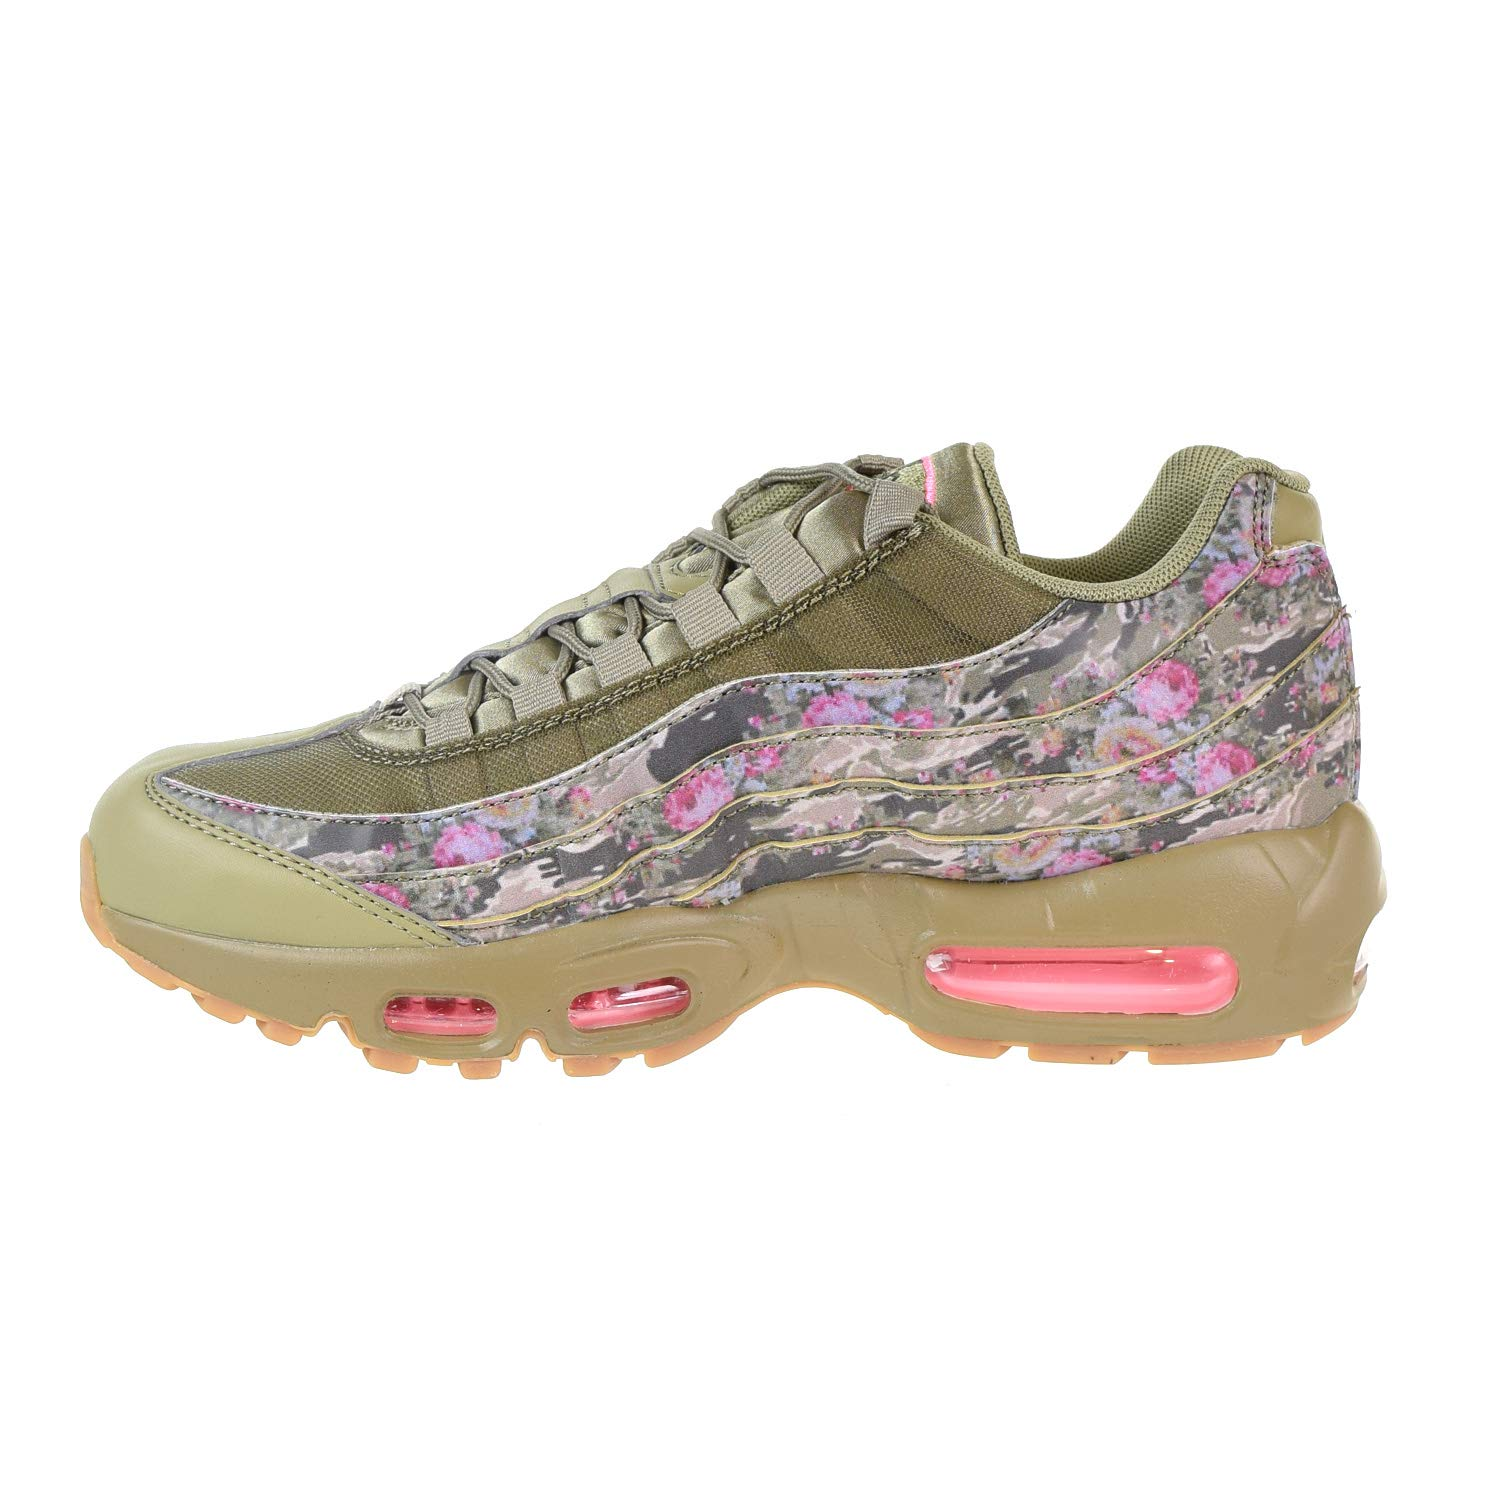 f2e5a7c426 Amazon.com | Nike Air Max 95 Women's Shoes Neutral Olive/Arctic Punch  aq6385-200 (9.5 B(M) US) | Running